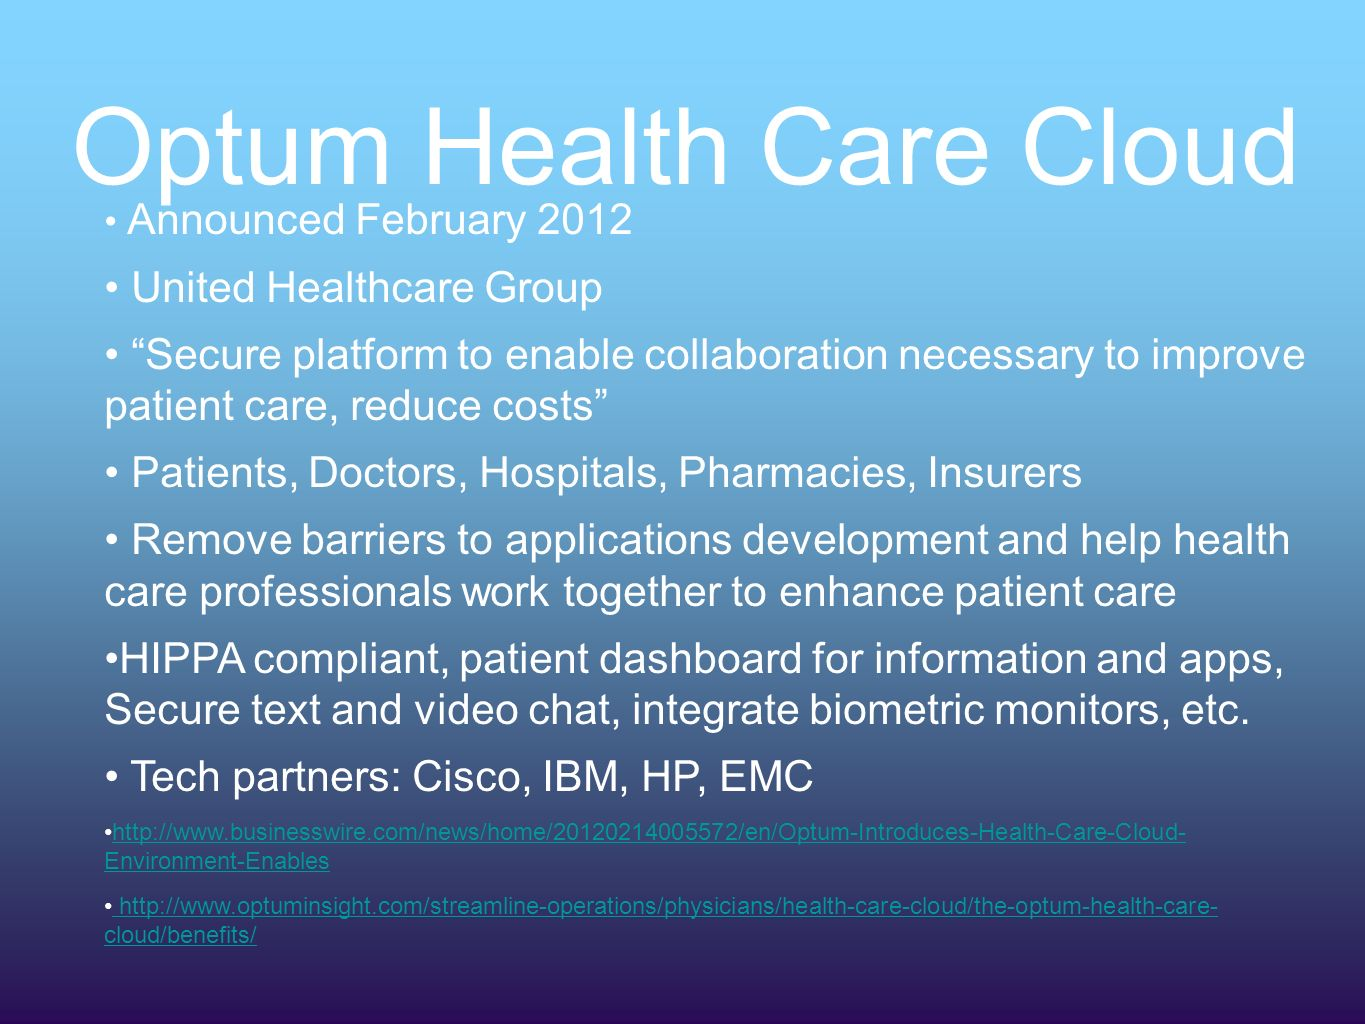 Optum Health Care Cloud Announced February 2012 United Healthcare Group Secure platform to enable collaboration necessary to improve patient care, reduce costs Patients, Doctors, Hospitals, Pharmacies, Insurers Remove barriers to applications development and help health care professionals work together to enhance patient care HIPPA compliant, patient dashboard for information and apps, Secure text and video chat, integrate biometric monitors, etc.